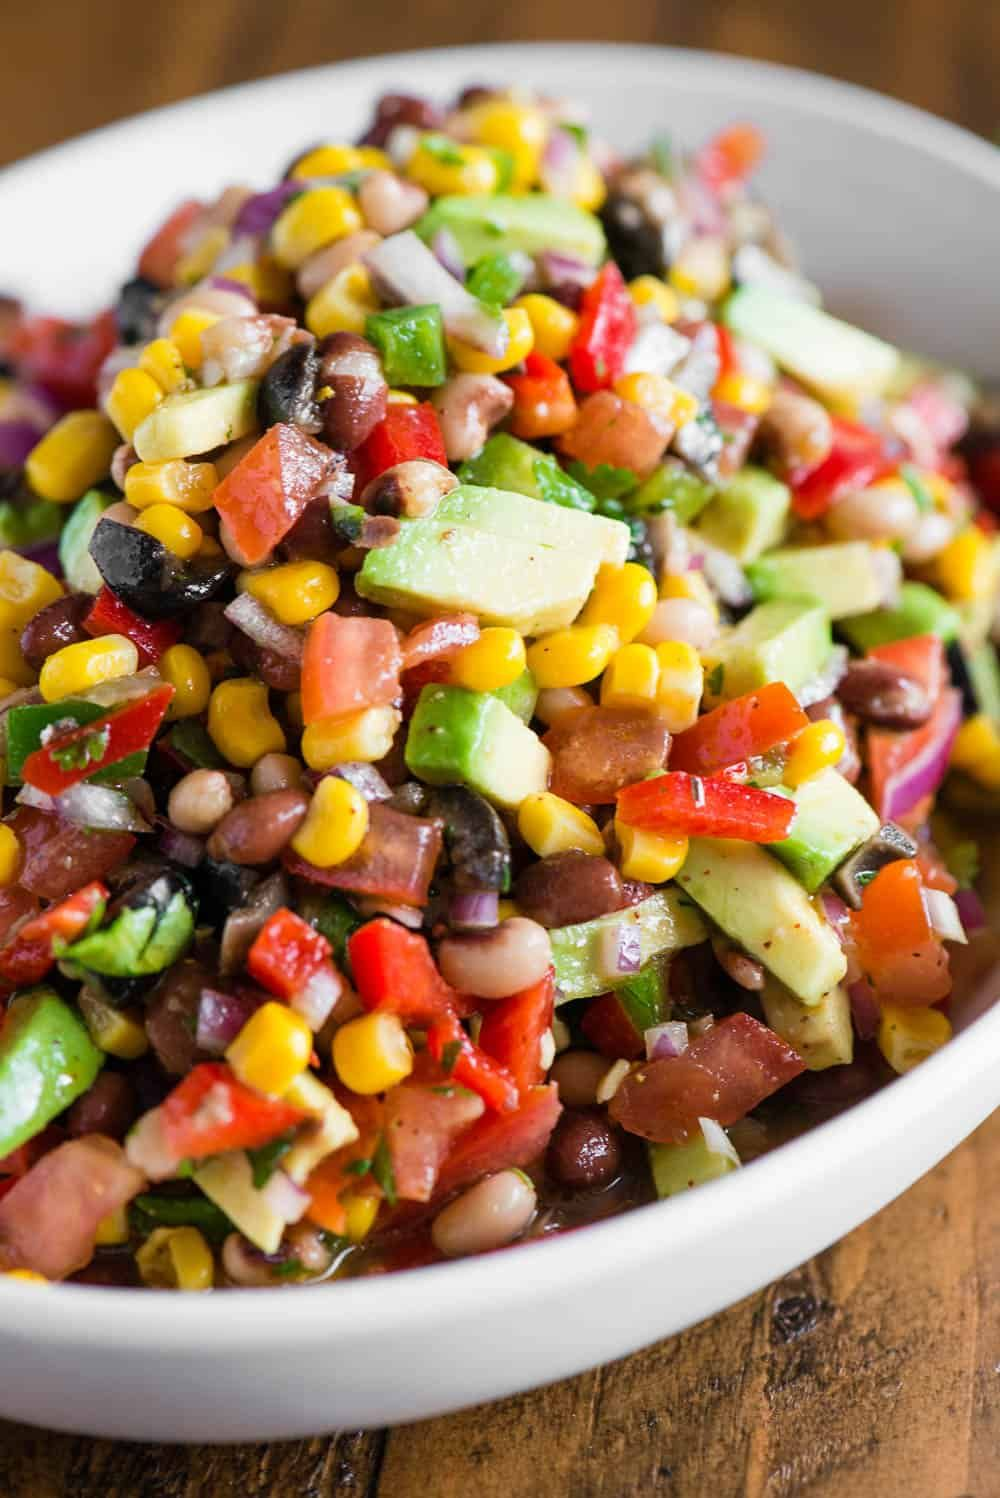 Cowboy Caviar, also known as Texas Caviar, is a cold salad recipe consisting of black eyed peas, a